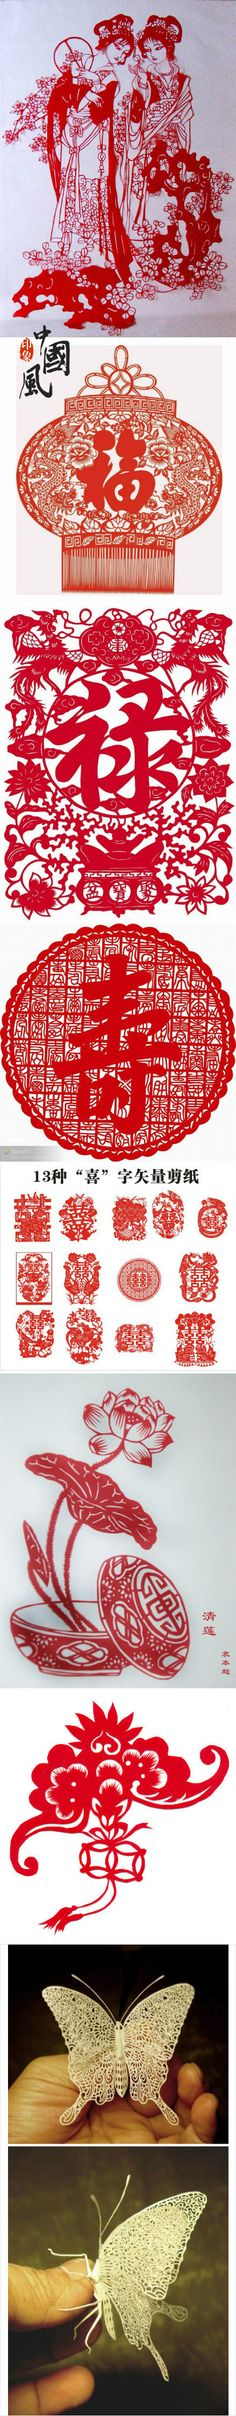 china style. Not sure if all items are paper?